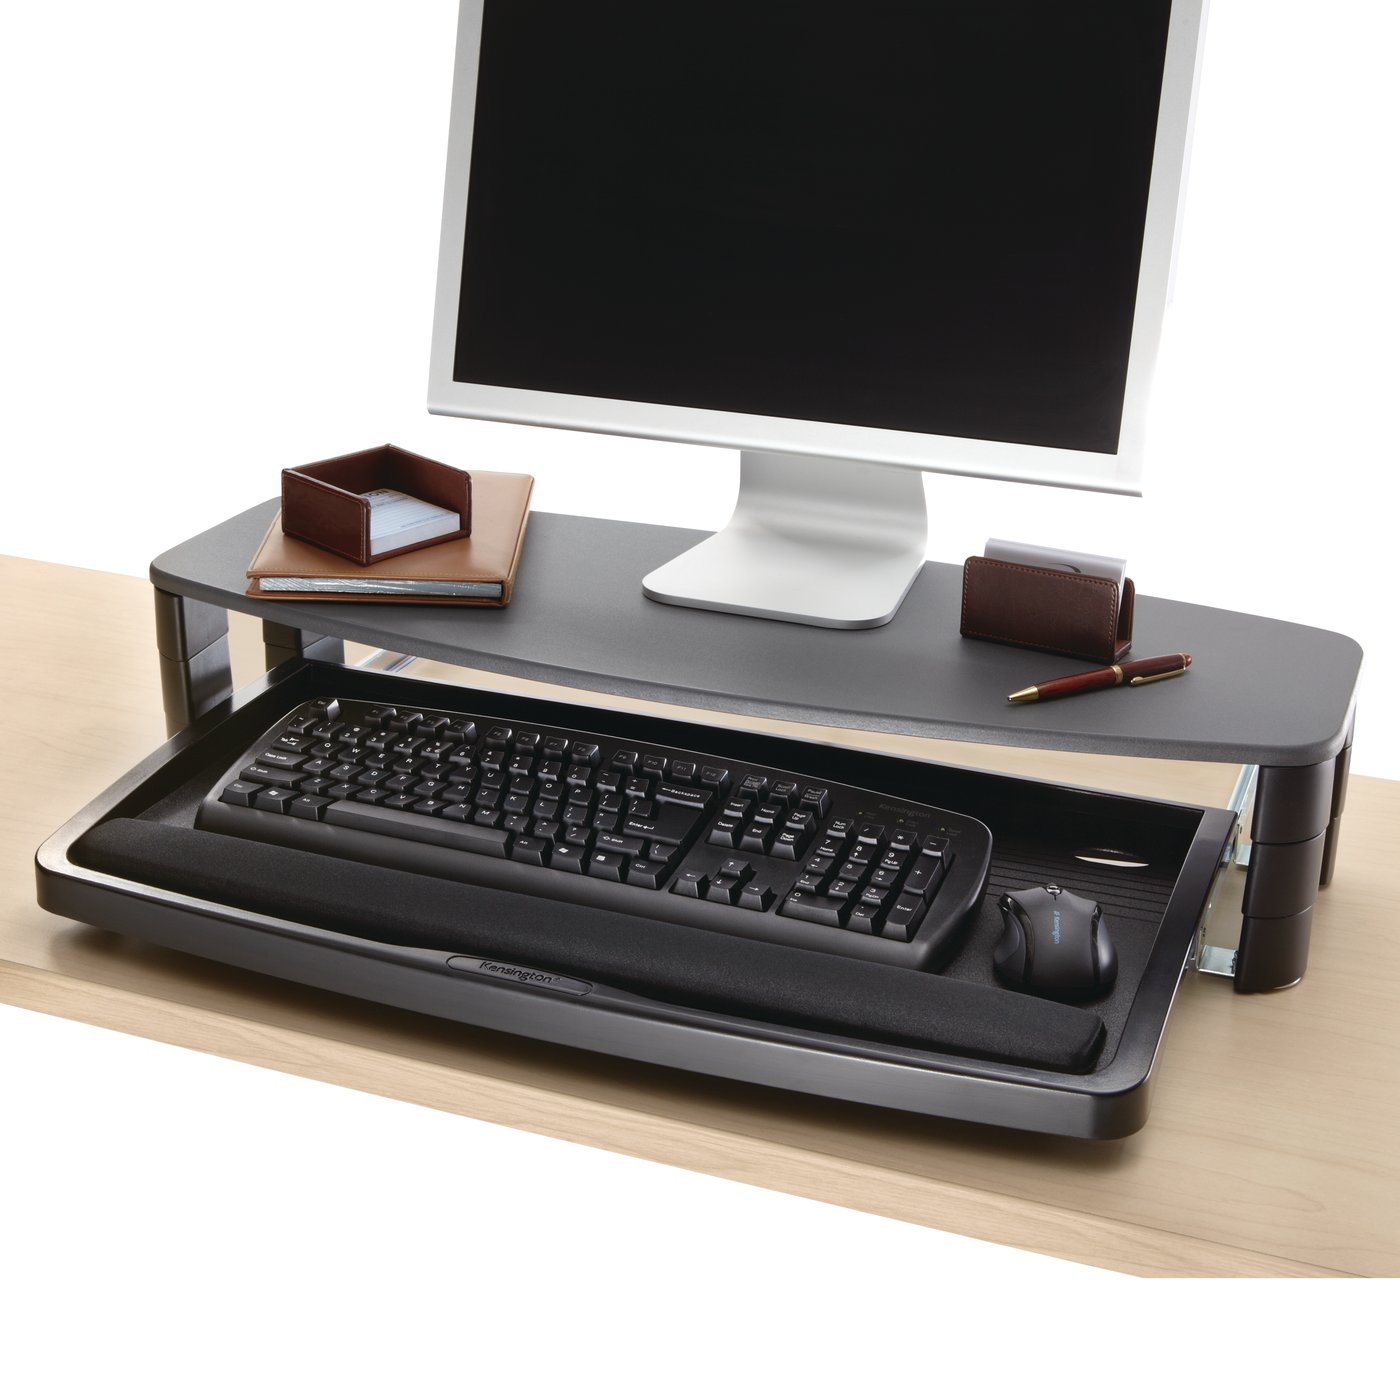 akd computer products drawer and htm keyboard tray